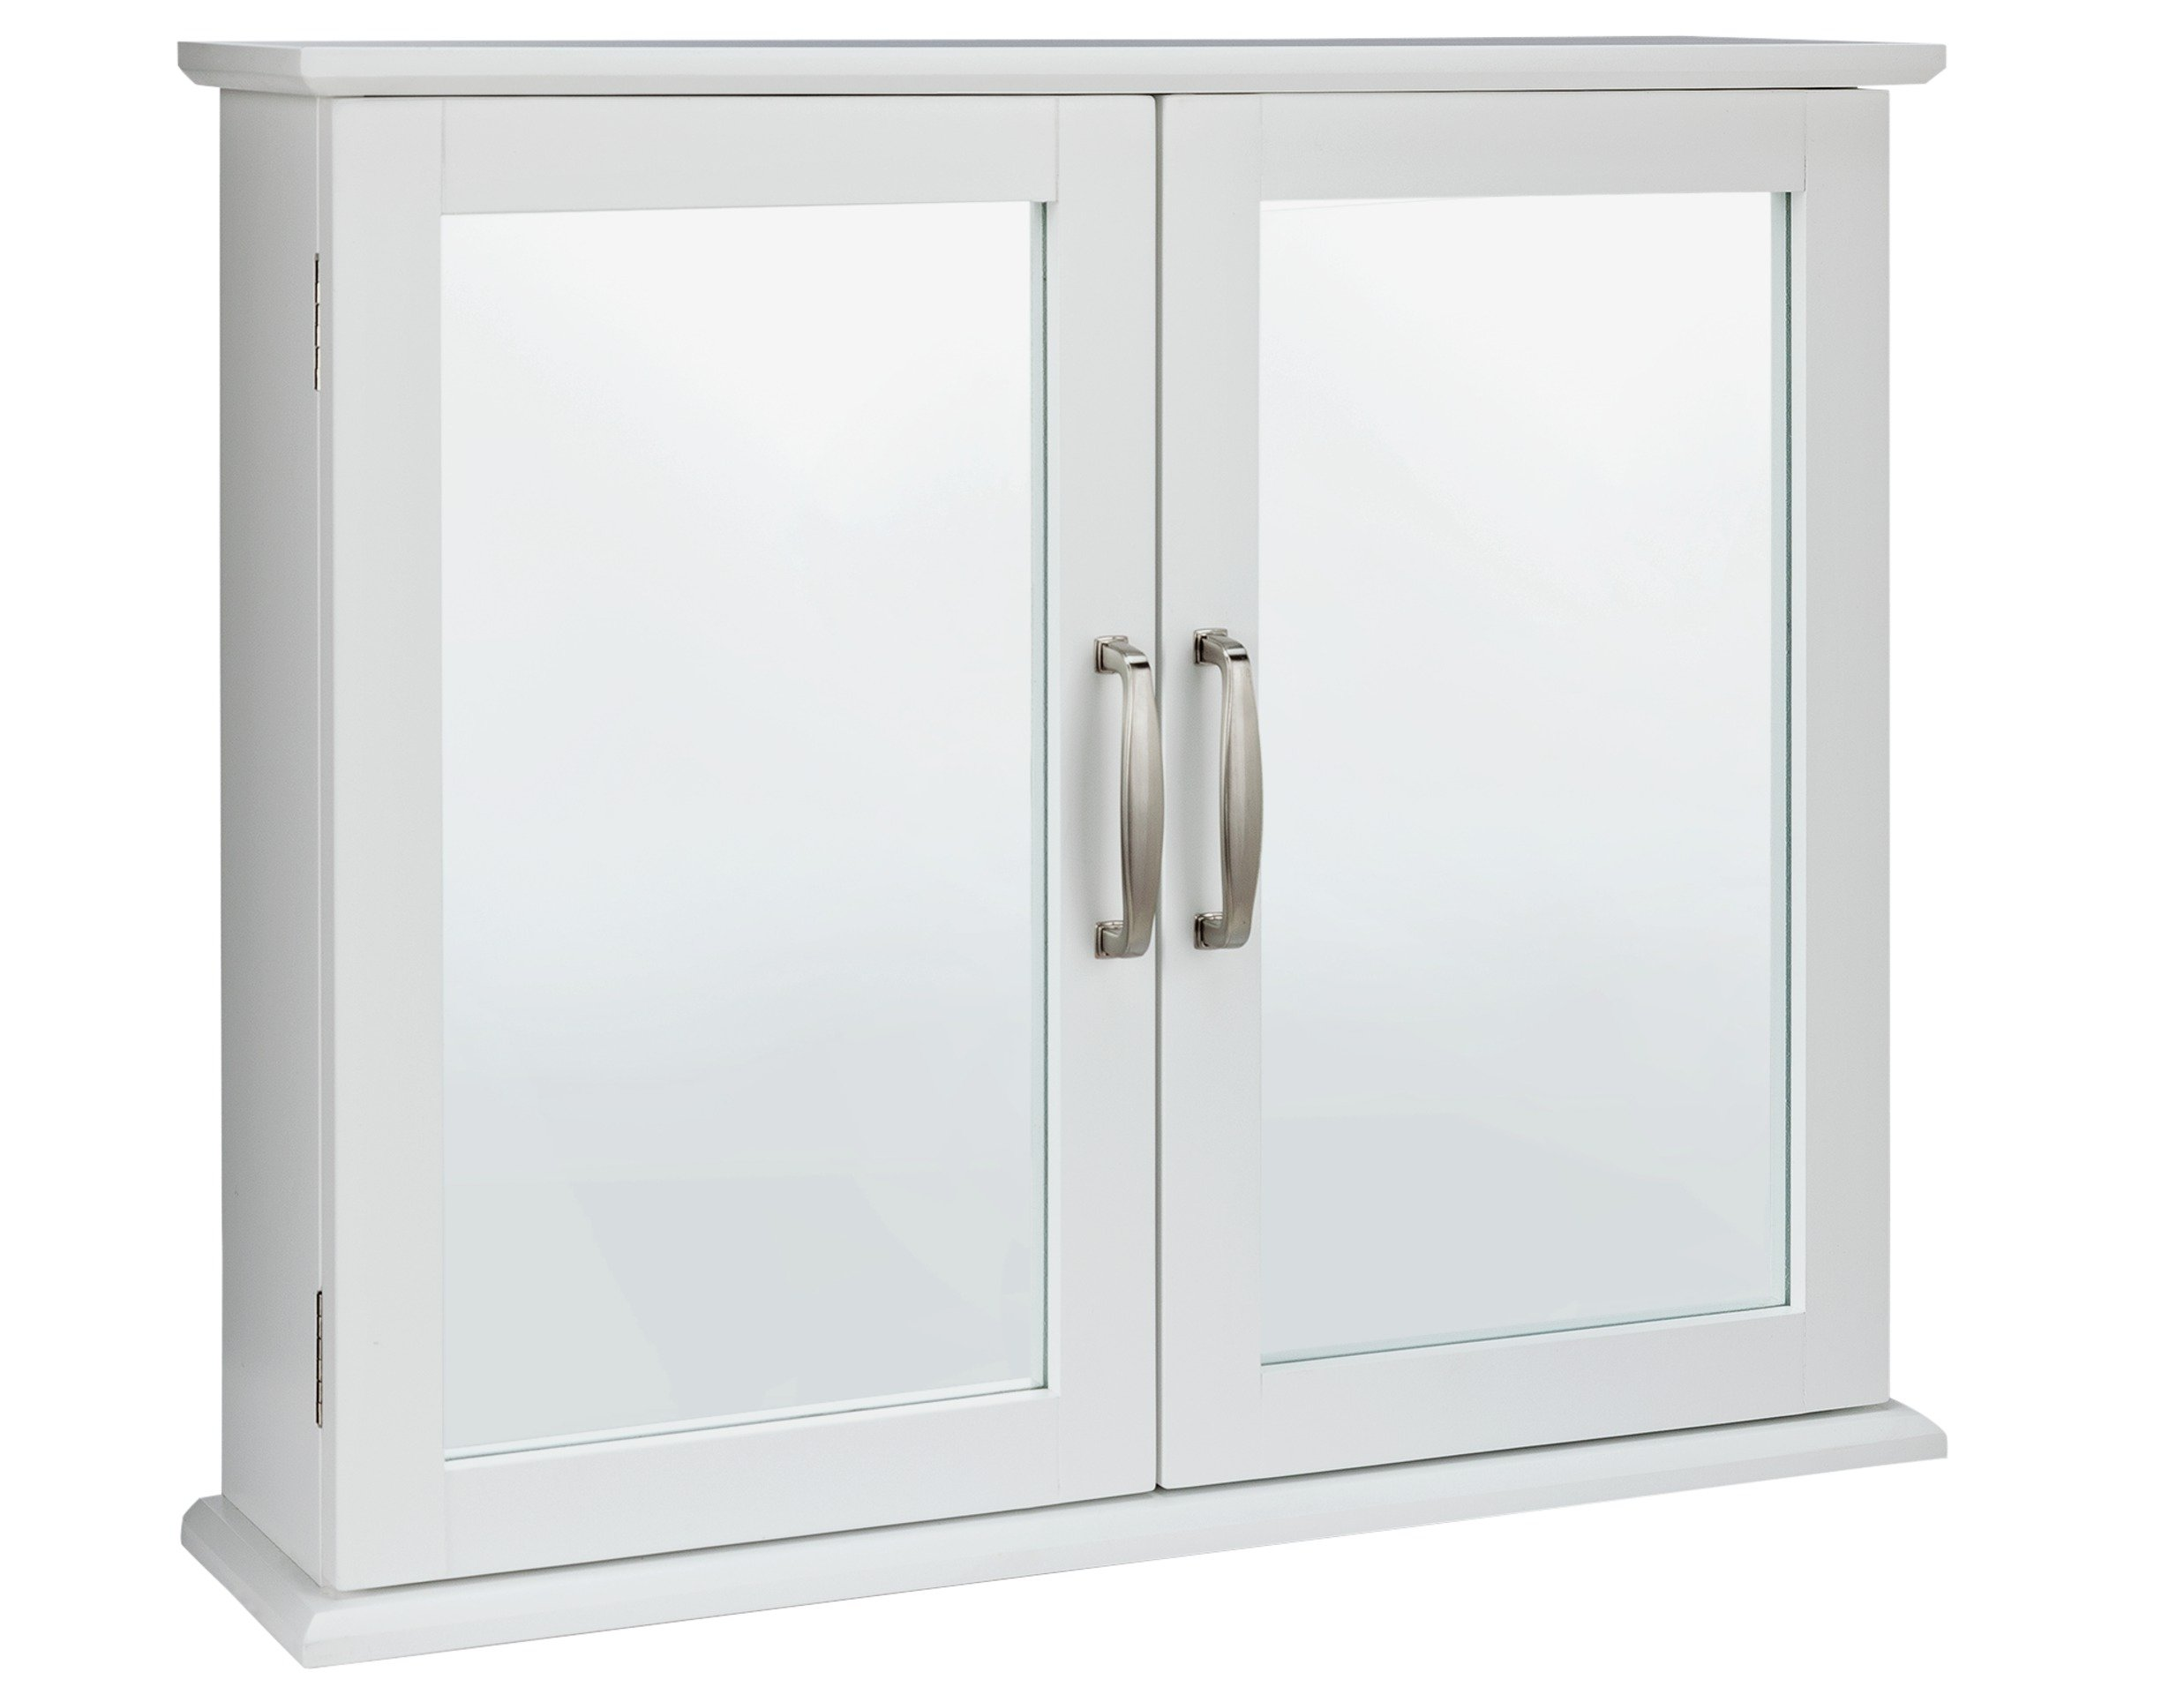 Collection New Tongue And Groove Mirrored Wall Cabinet White